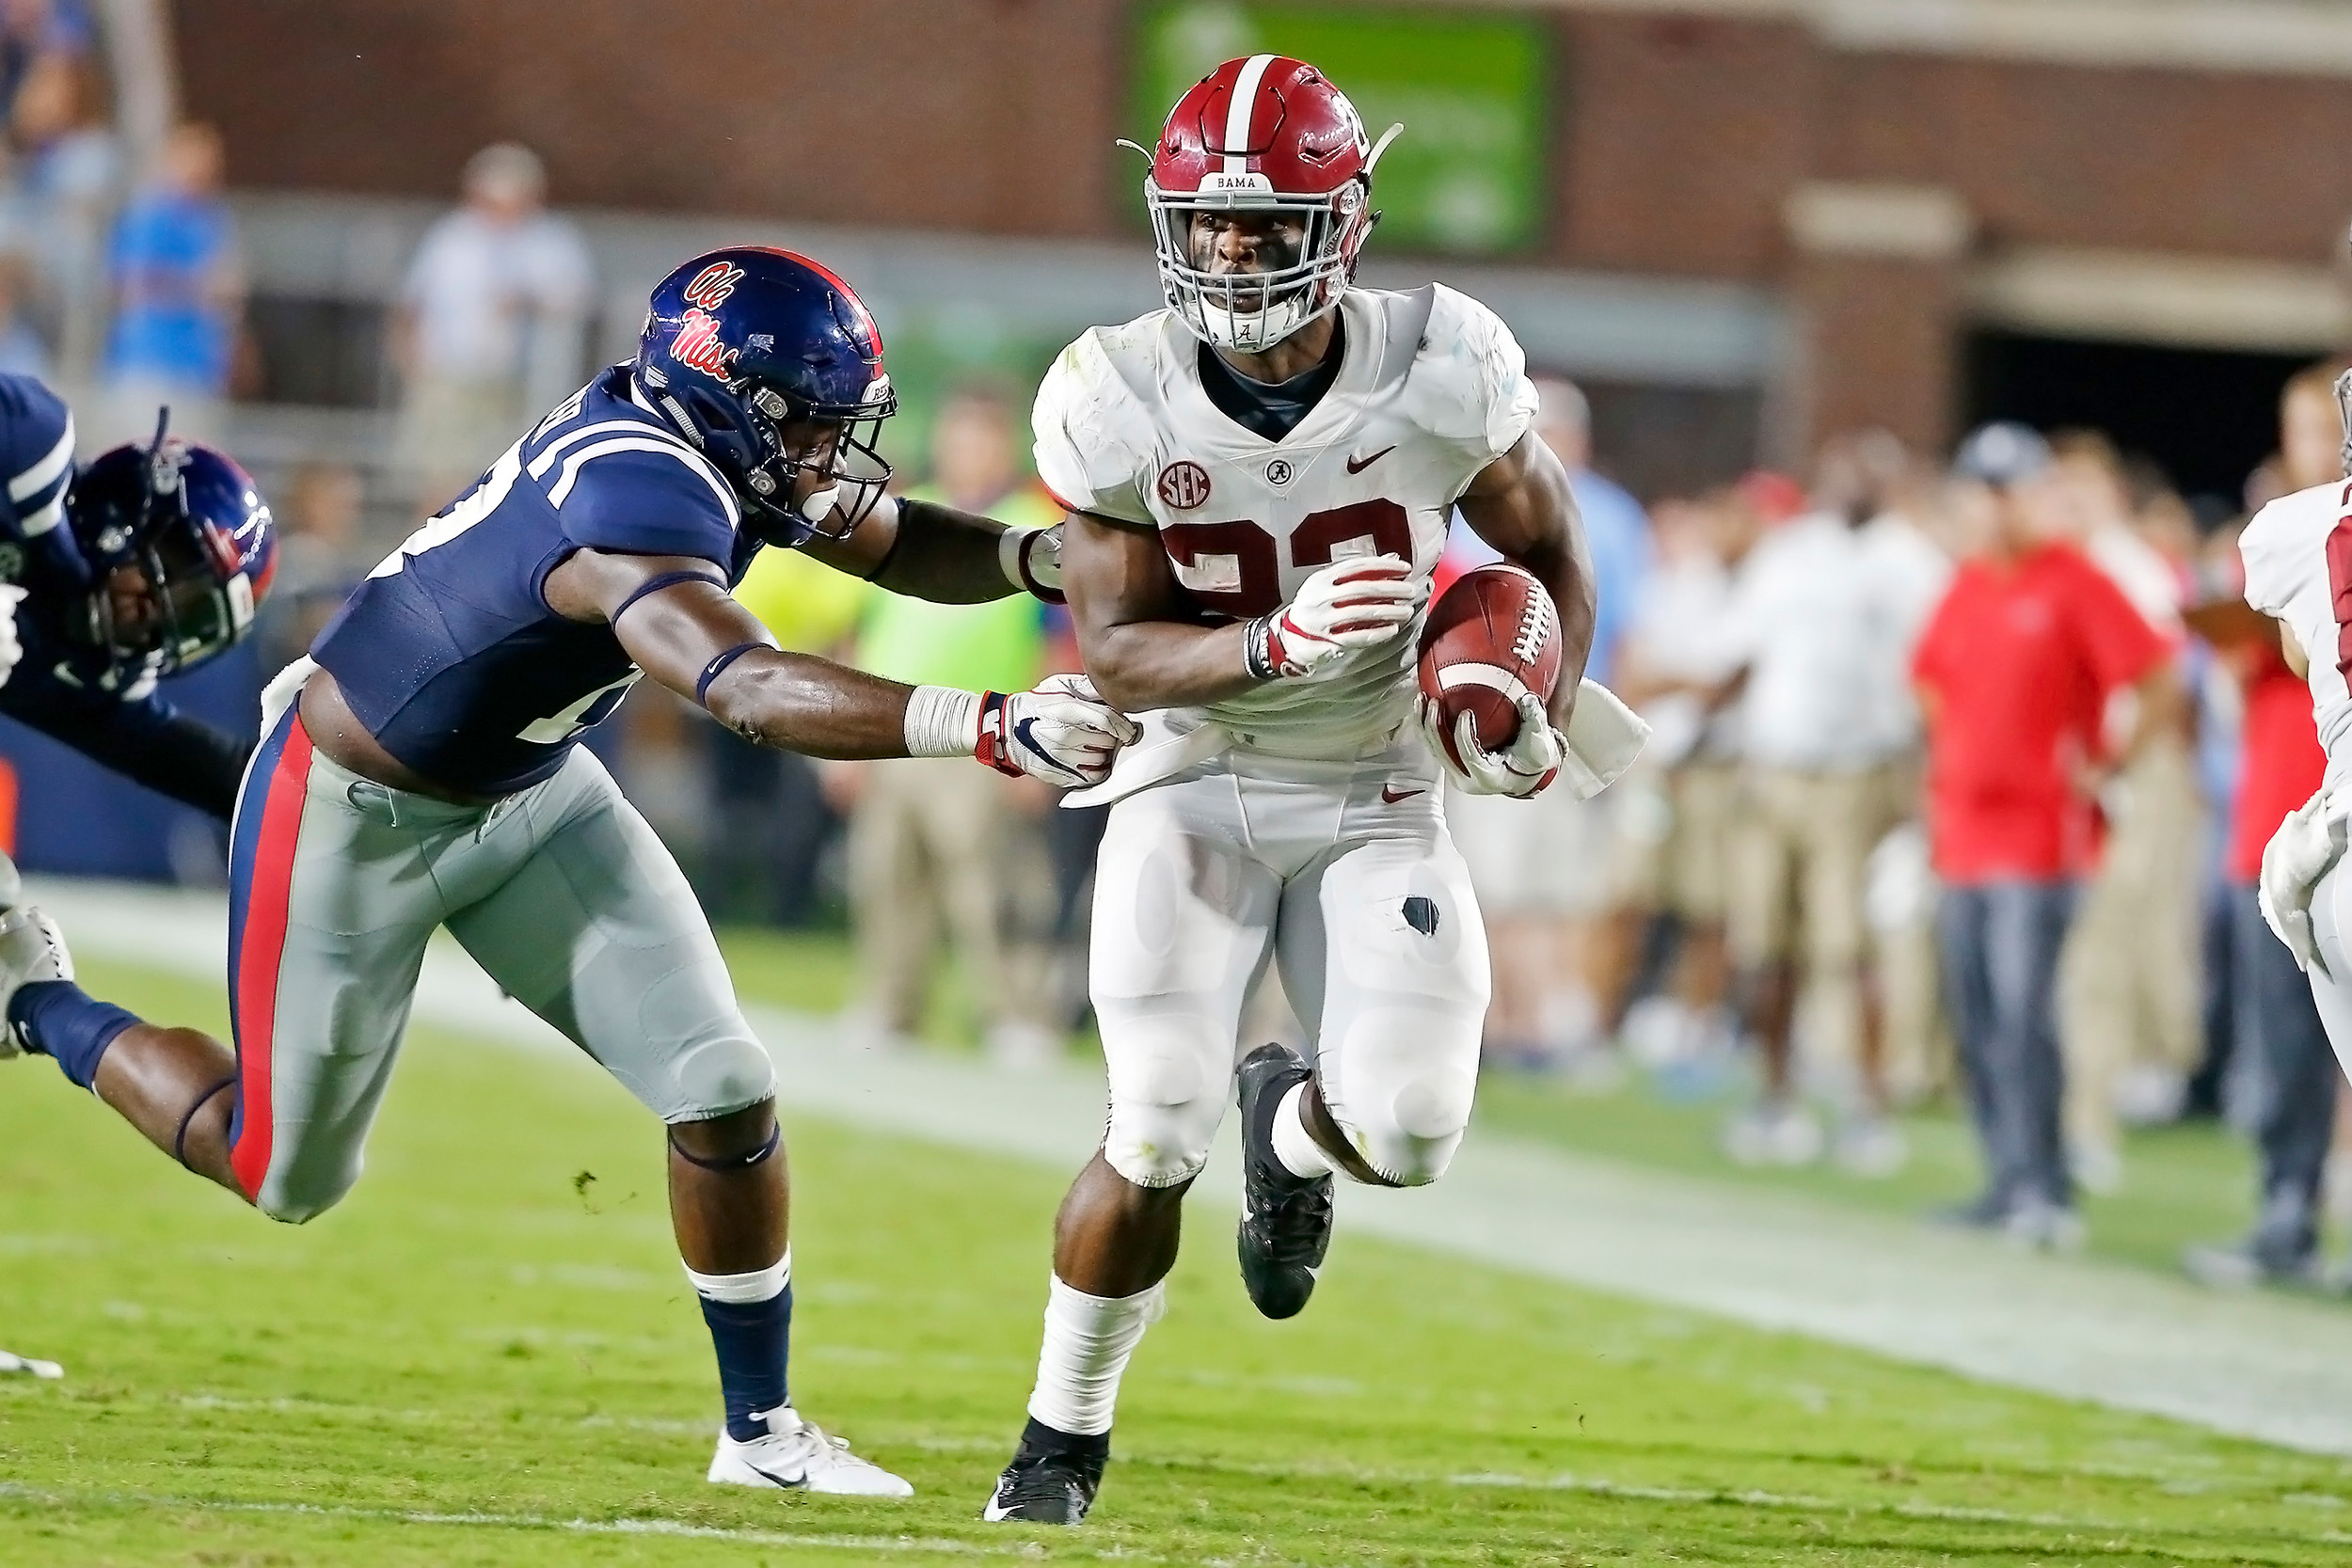 Alabama Crimson Tide running back Najee Harris (22) rushes for a big gain during the game between the University of Alabama and Ole Miss at Vaught-Hemingway Stadium. Jason Clark / Daily Mountain Eagle